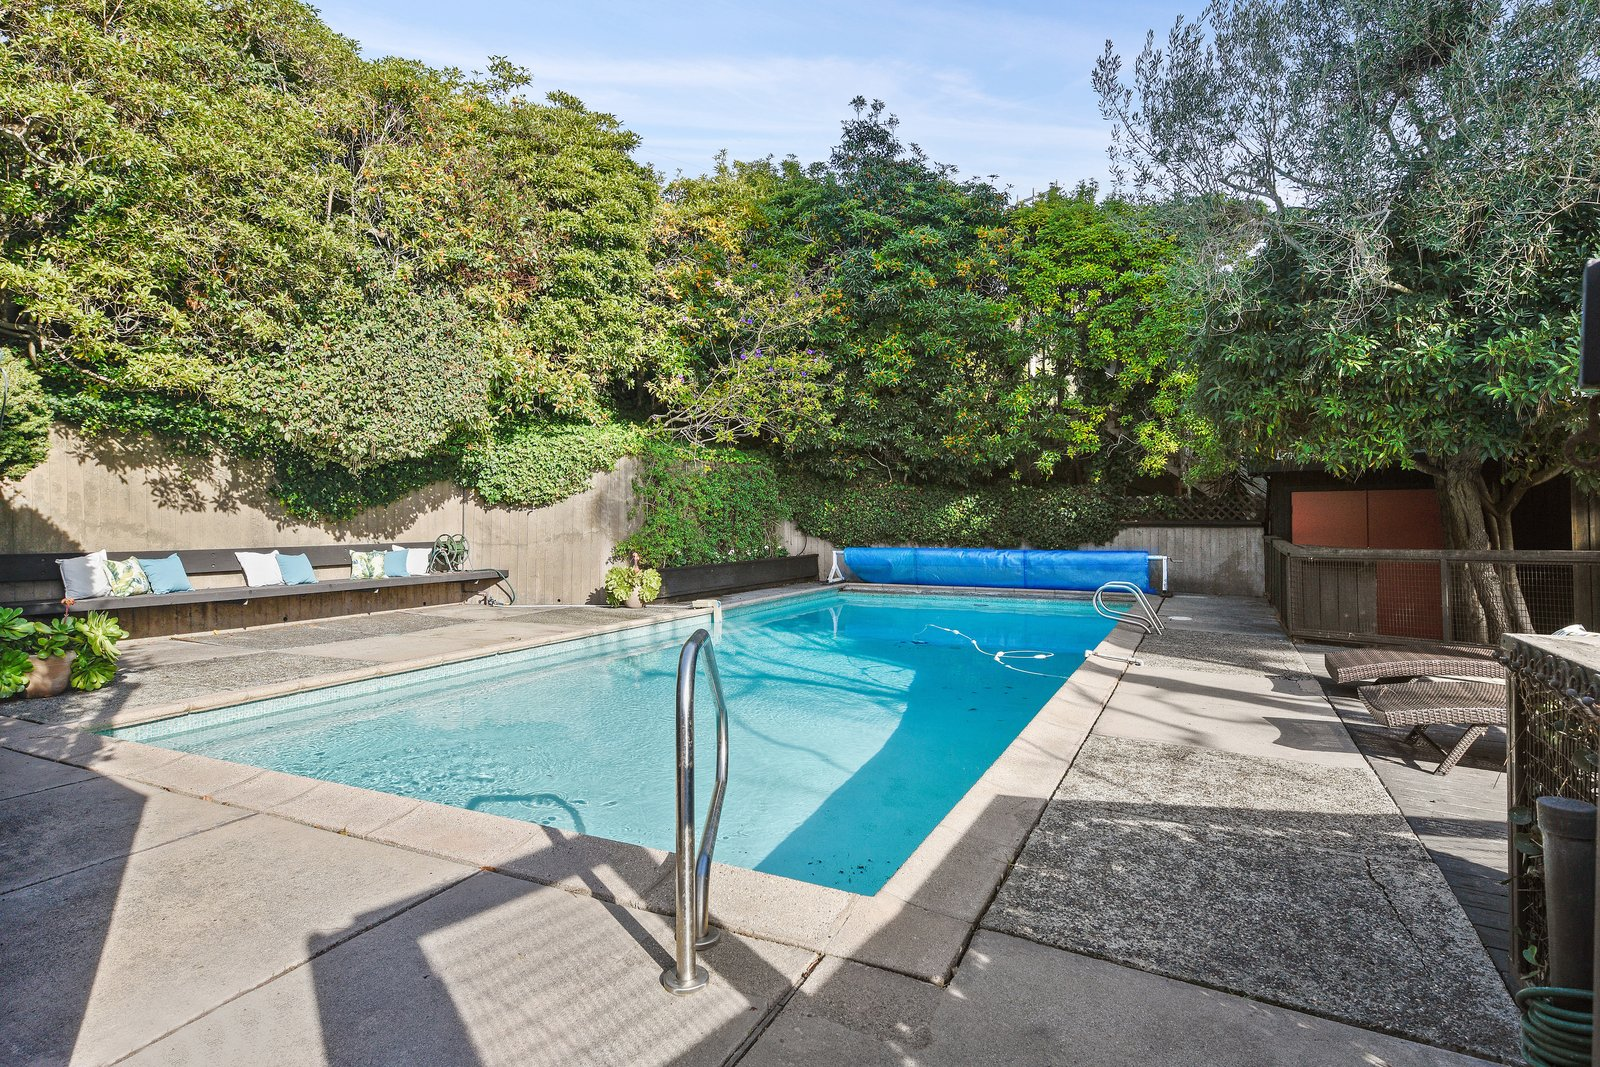 Outdoor, Concrete Pools, Tubs, Shower, Swimming Pools, Tubs, Shower, Concrete Patio, Porch, Deck, Vertical Fences, Wall, Trees, and Concrete Fences, Wall A solar heated pool is one of the many modern amenities that add to the iconic estate.  Photo 14 of 14 in A Bay Area Jewel With Golden Gate Views Wants $1.55M